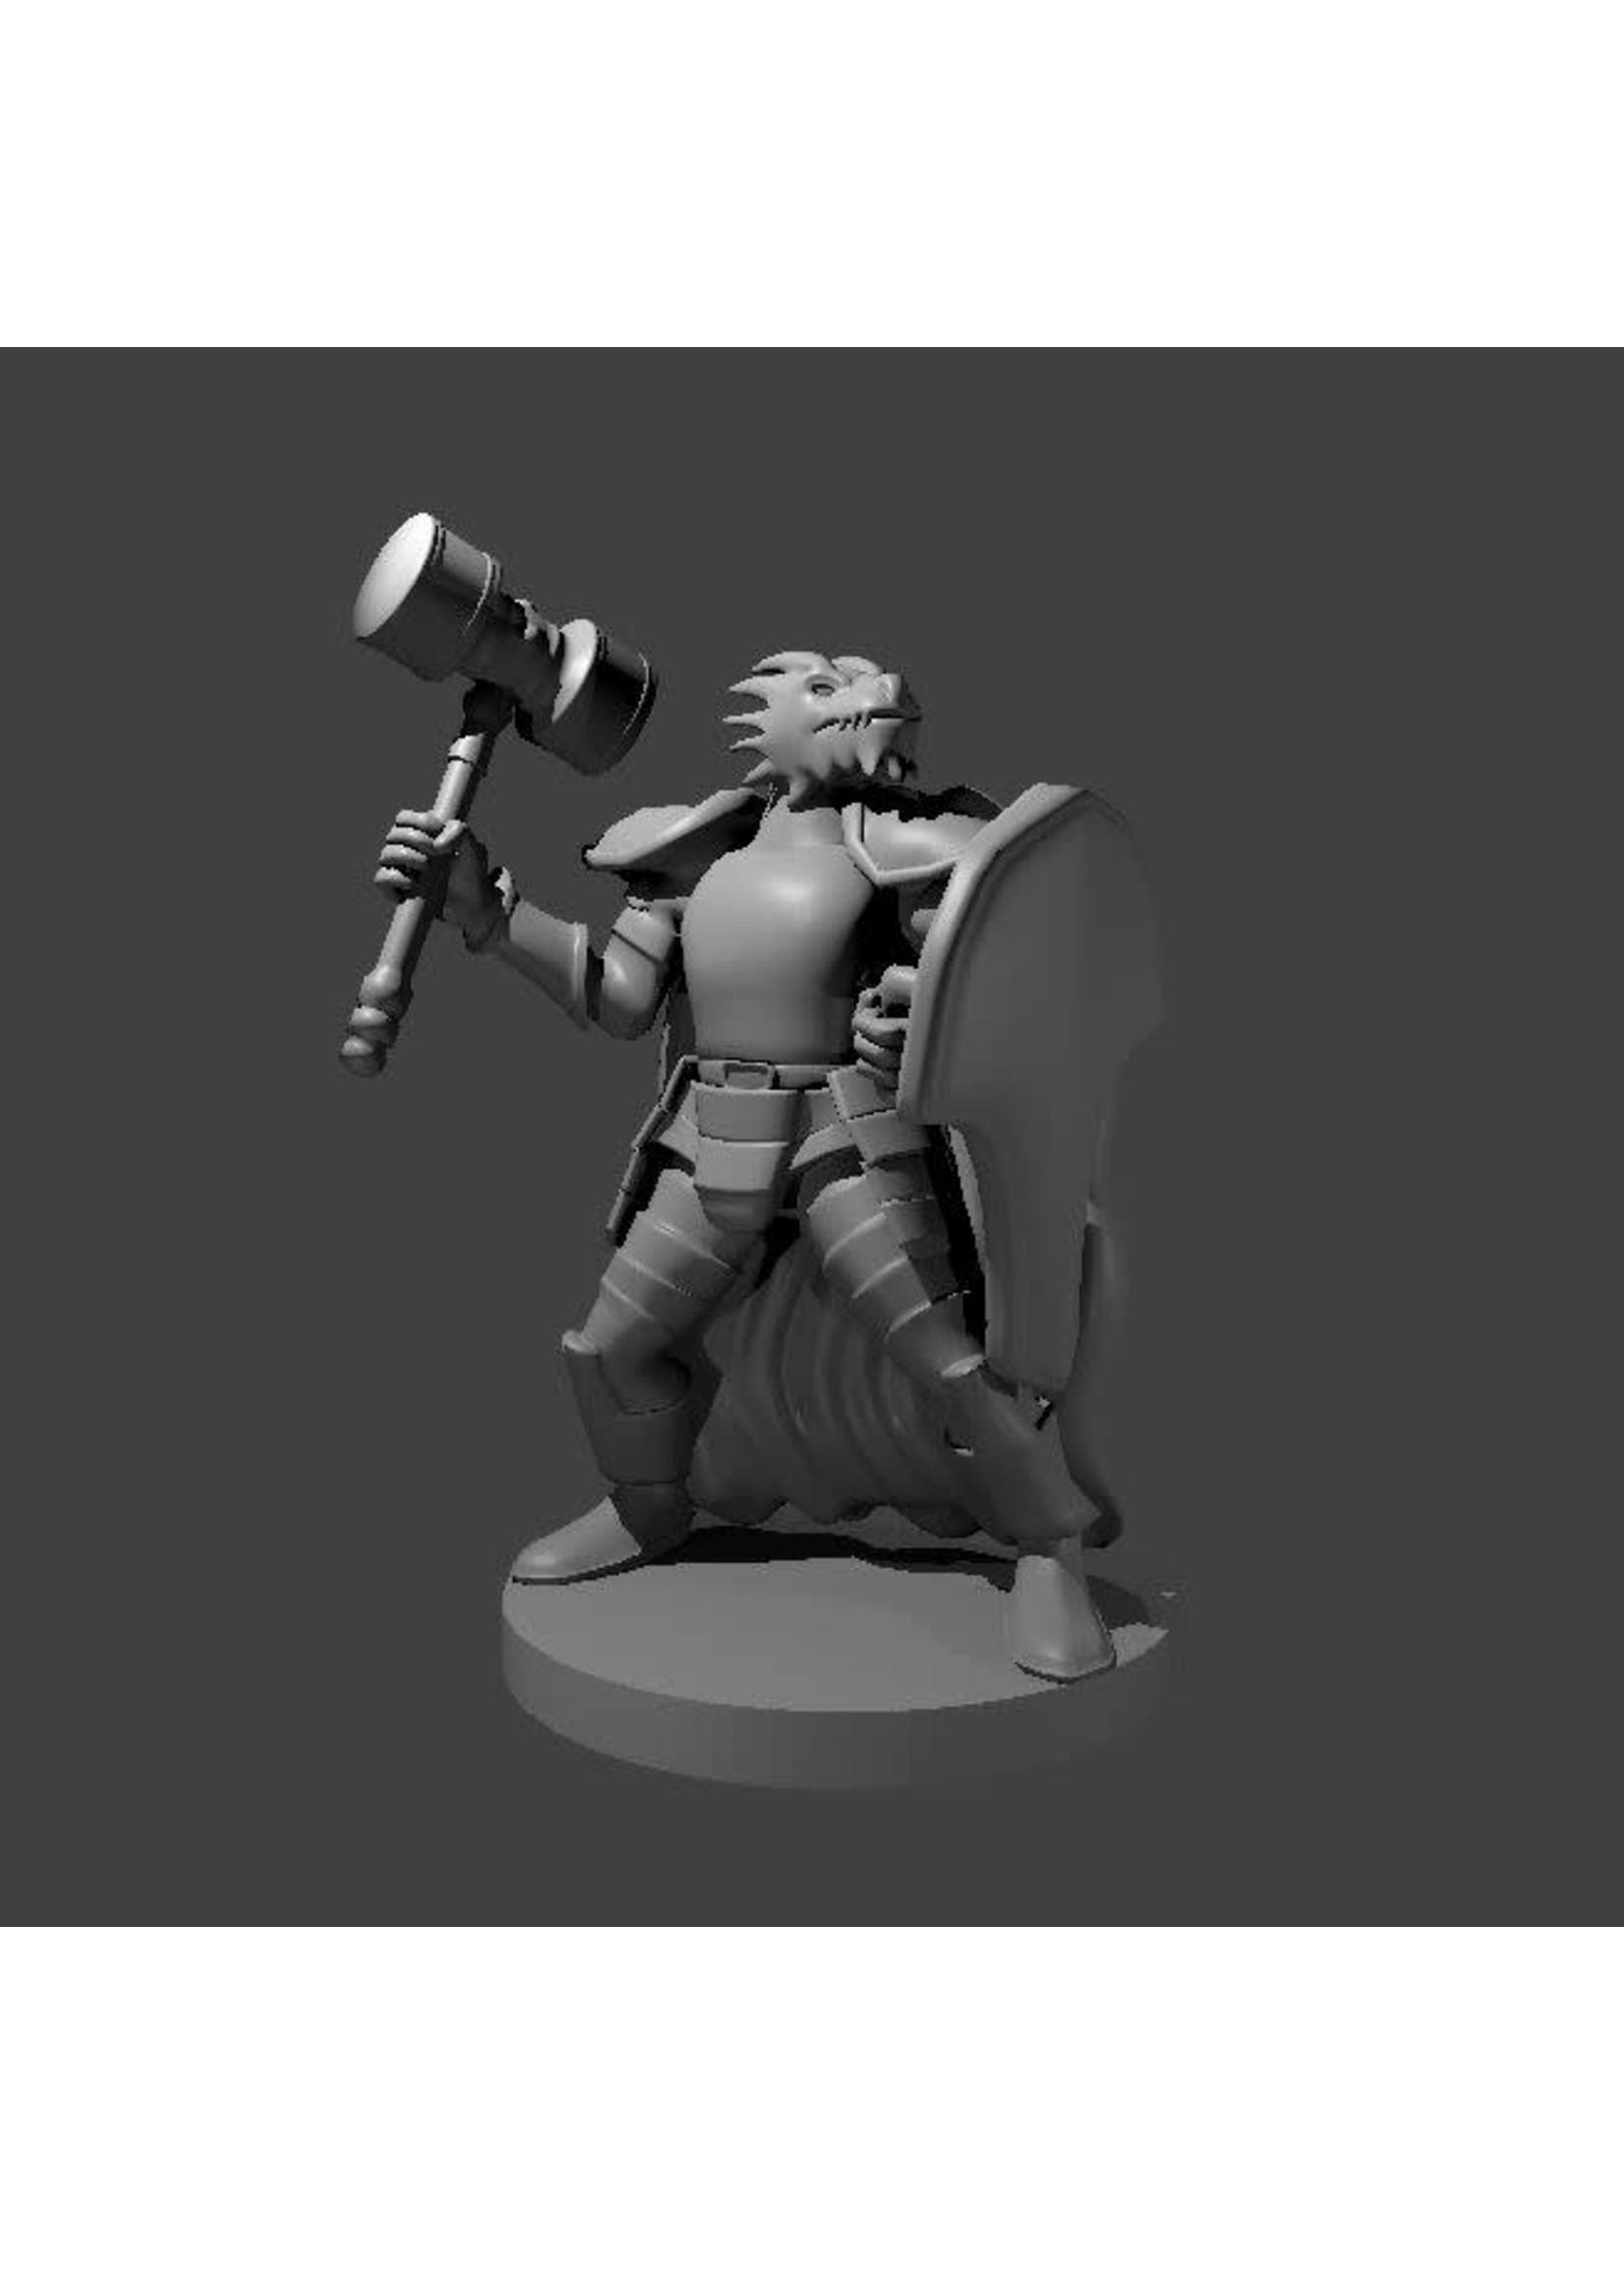 Dragonborn Fighter With Hammer And Shield (Patreon Mz4250)